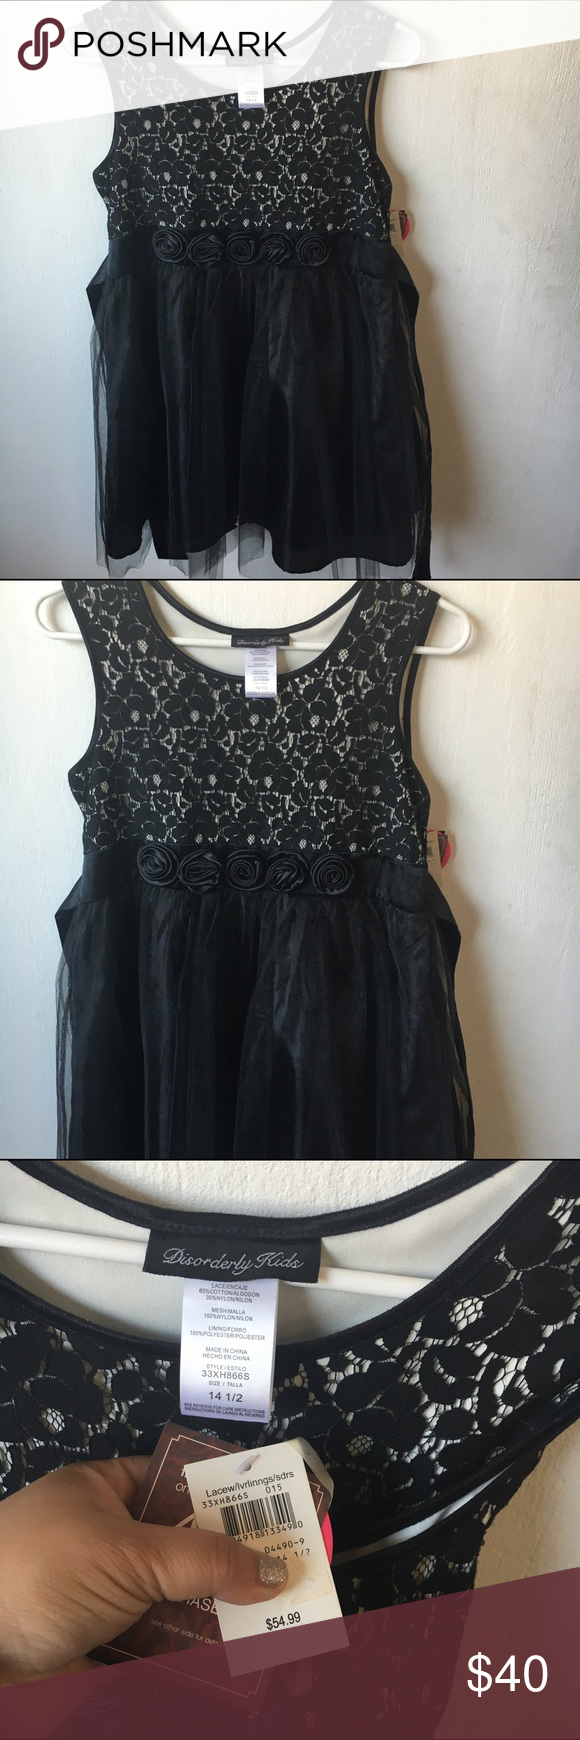 Girls dress size nwt dress formal retail and nordstrom